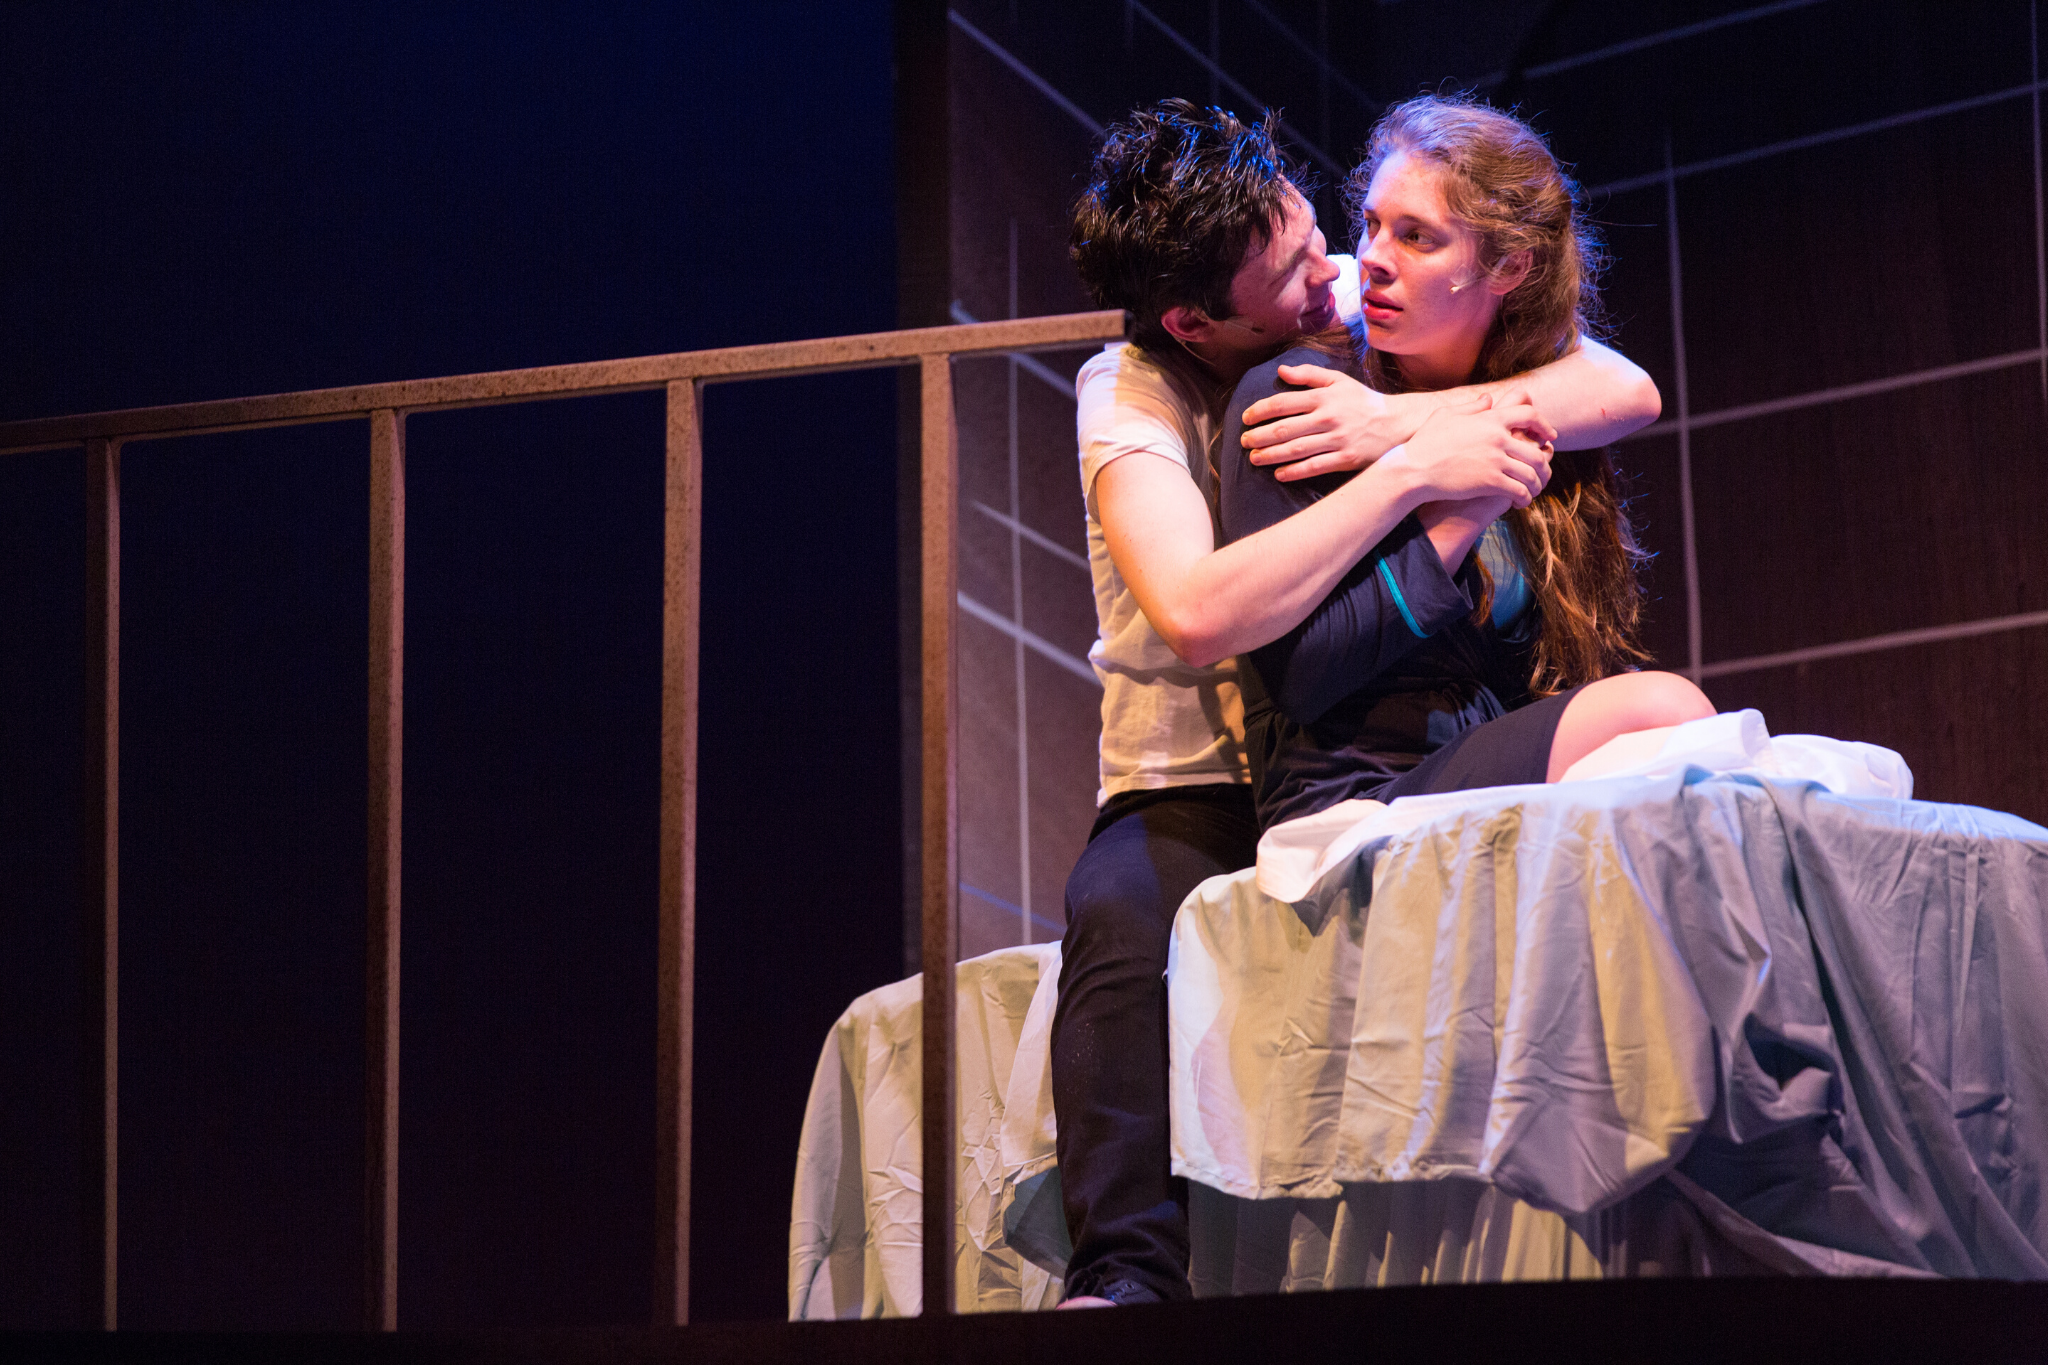 Eliott Purcell (Romeo) and Charlotte Kinder (Juliet) in Romeo & Juliet, CSC2, 2015-Photo by Nile Hawver